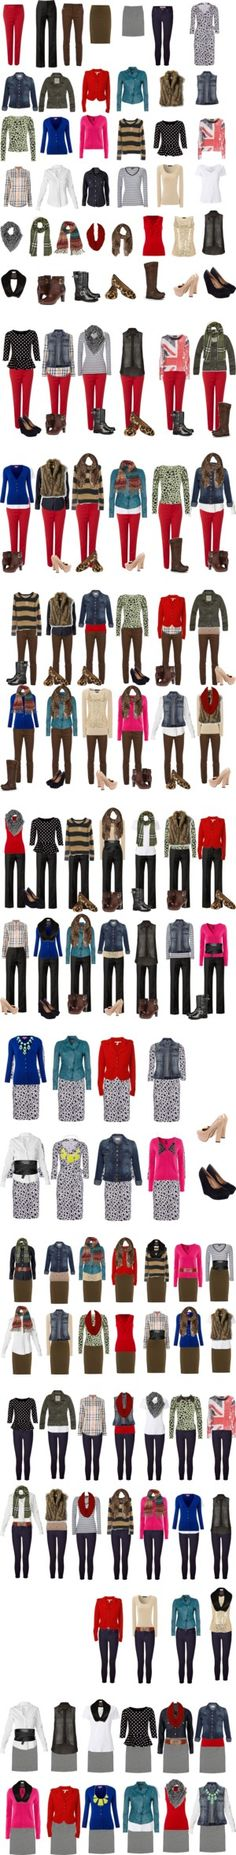 """Capsule Wardrobe -- Fall/Winter"" by cocogolightly on Polyvore - having a few versatile, much-loved pieces to mix and match creates a small yet stylish wardrobe w/numerous options for almost every occasion/setting, which means you can spend more on better quality (I really need to cull my closet, blah)"